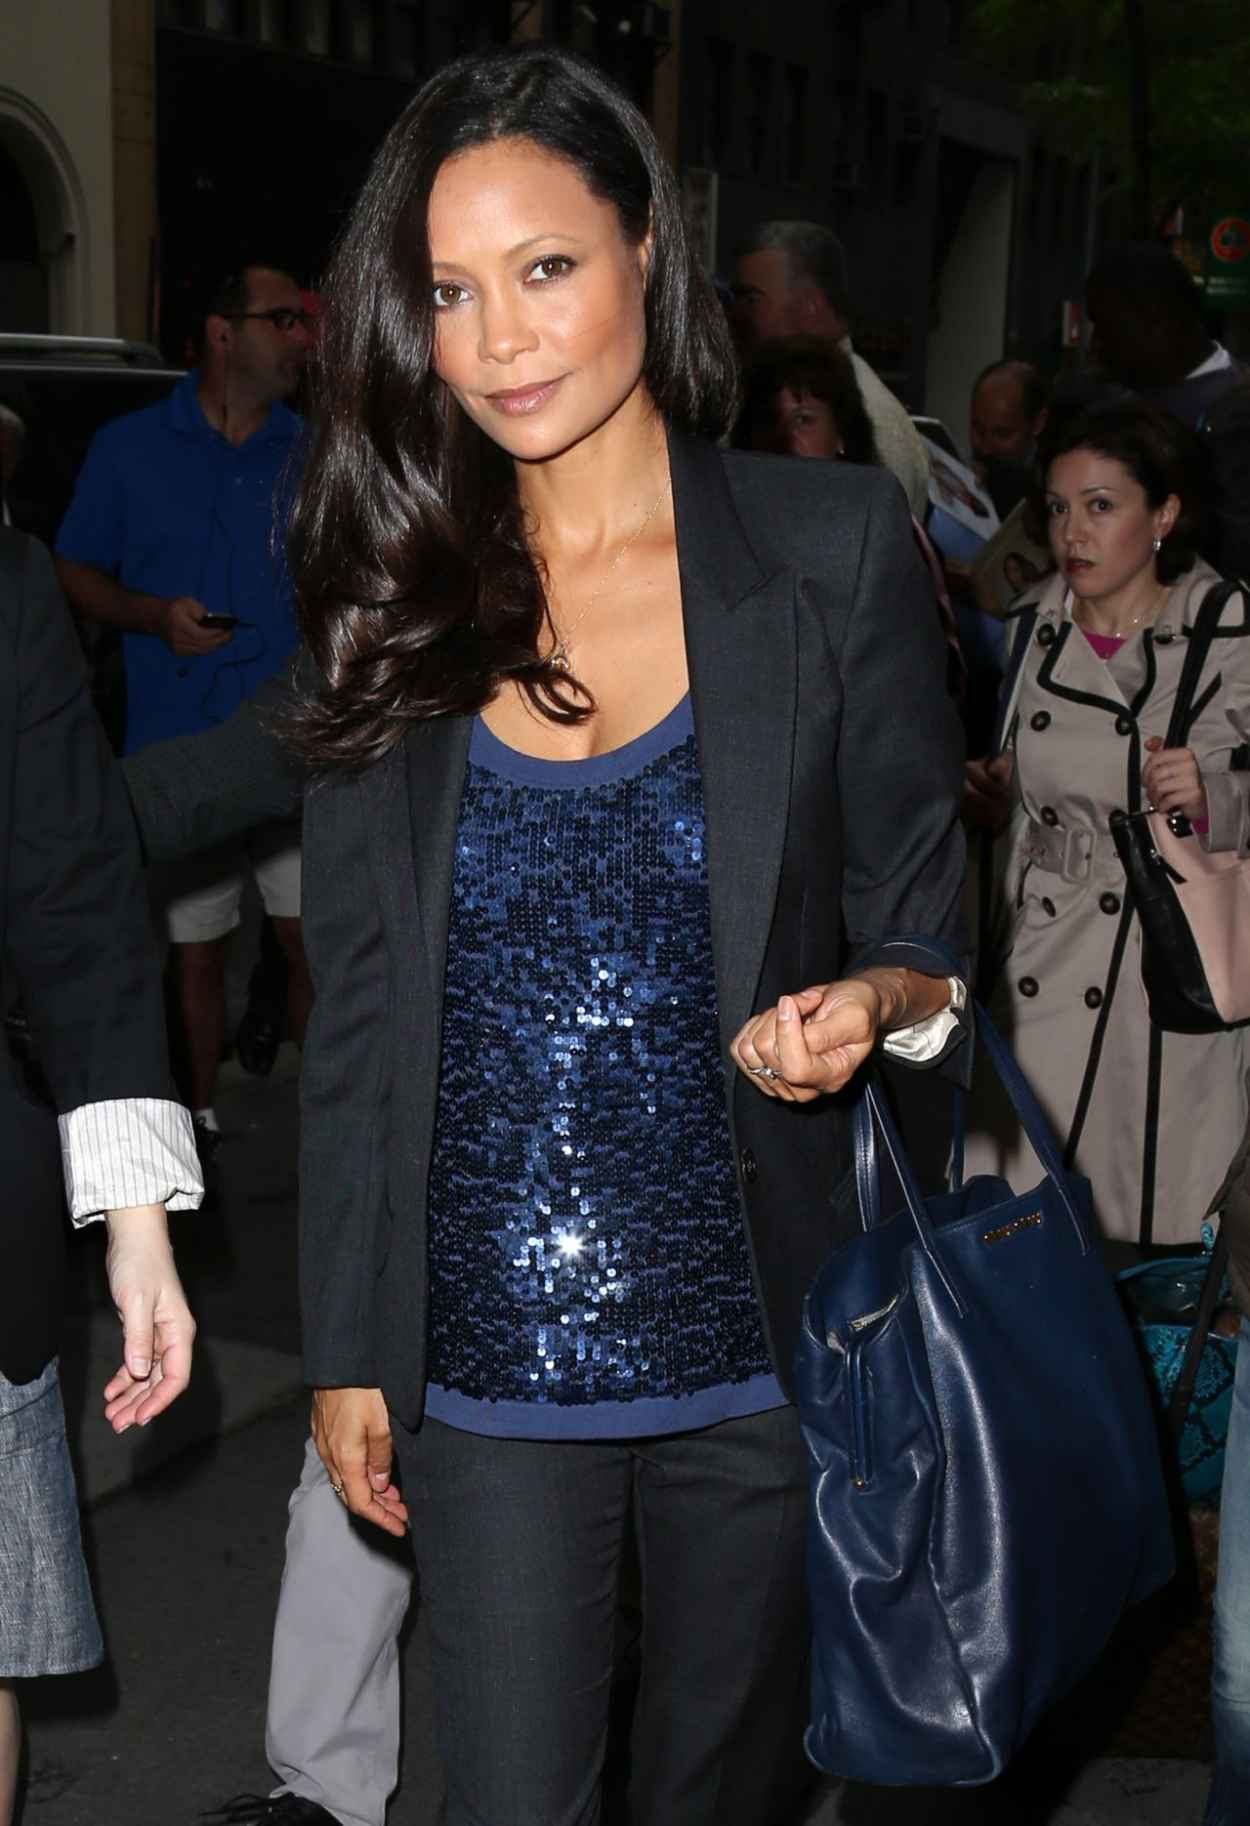 Thandie Newton Leaving the NBC Studios in NYC - May 2015-1